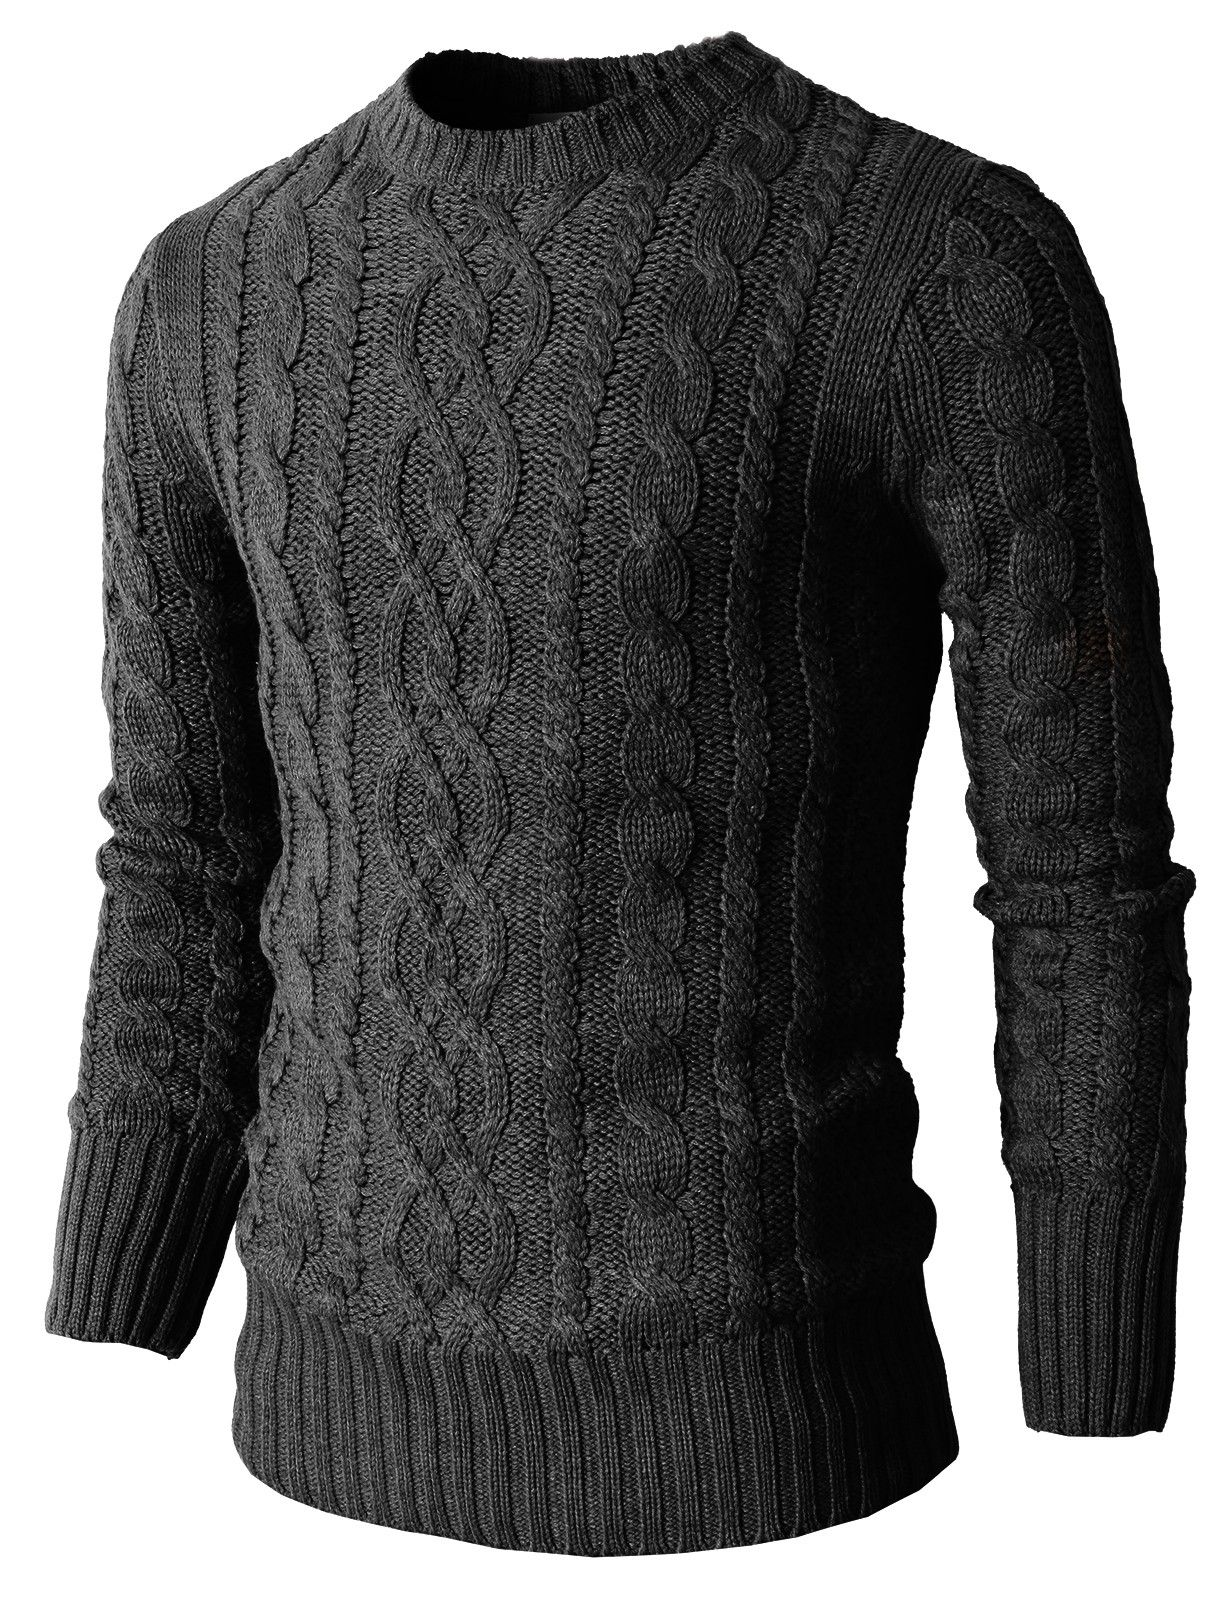 Mens Casual Knit Crewneck Pullover Sweater With Twisted Pattern (KMOSWL025)  #doublju